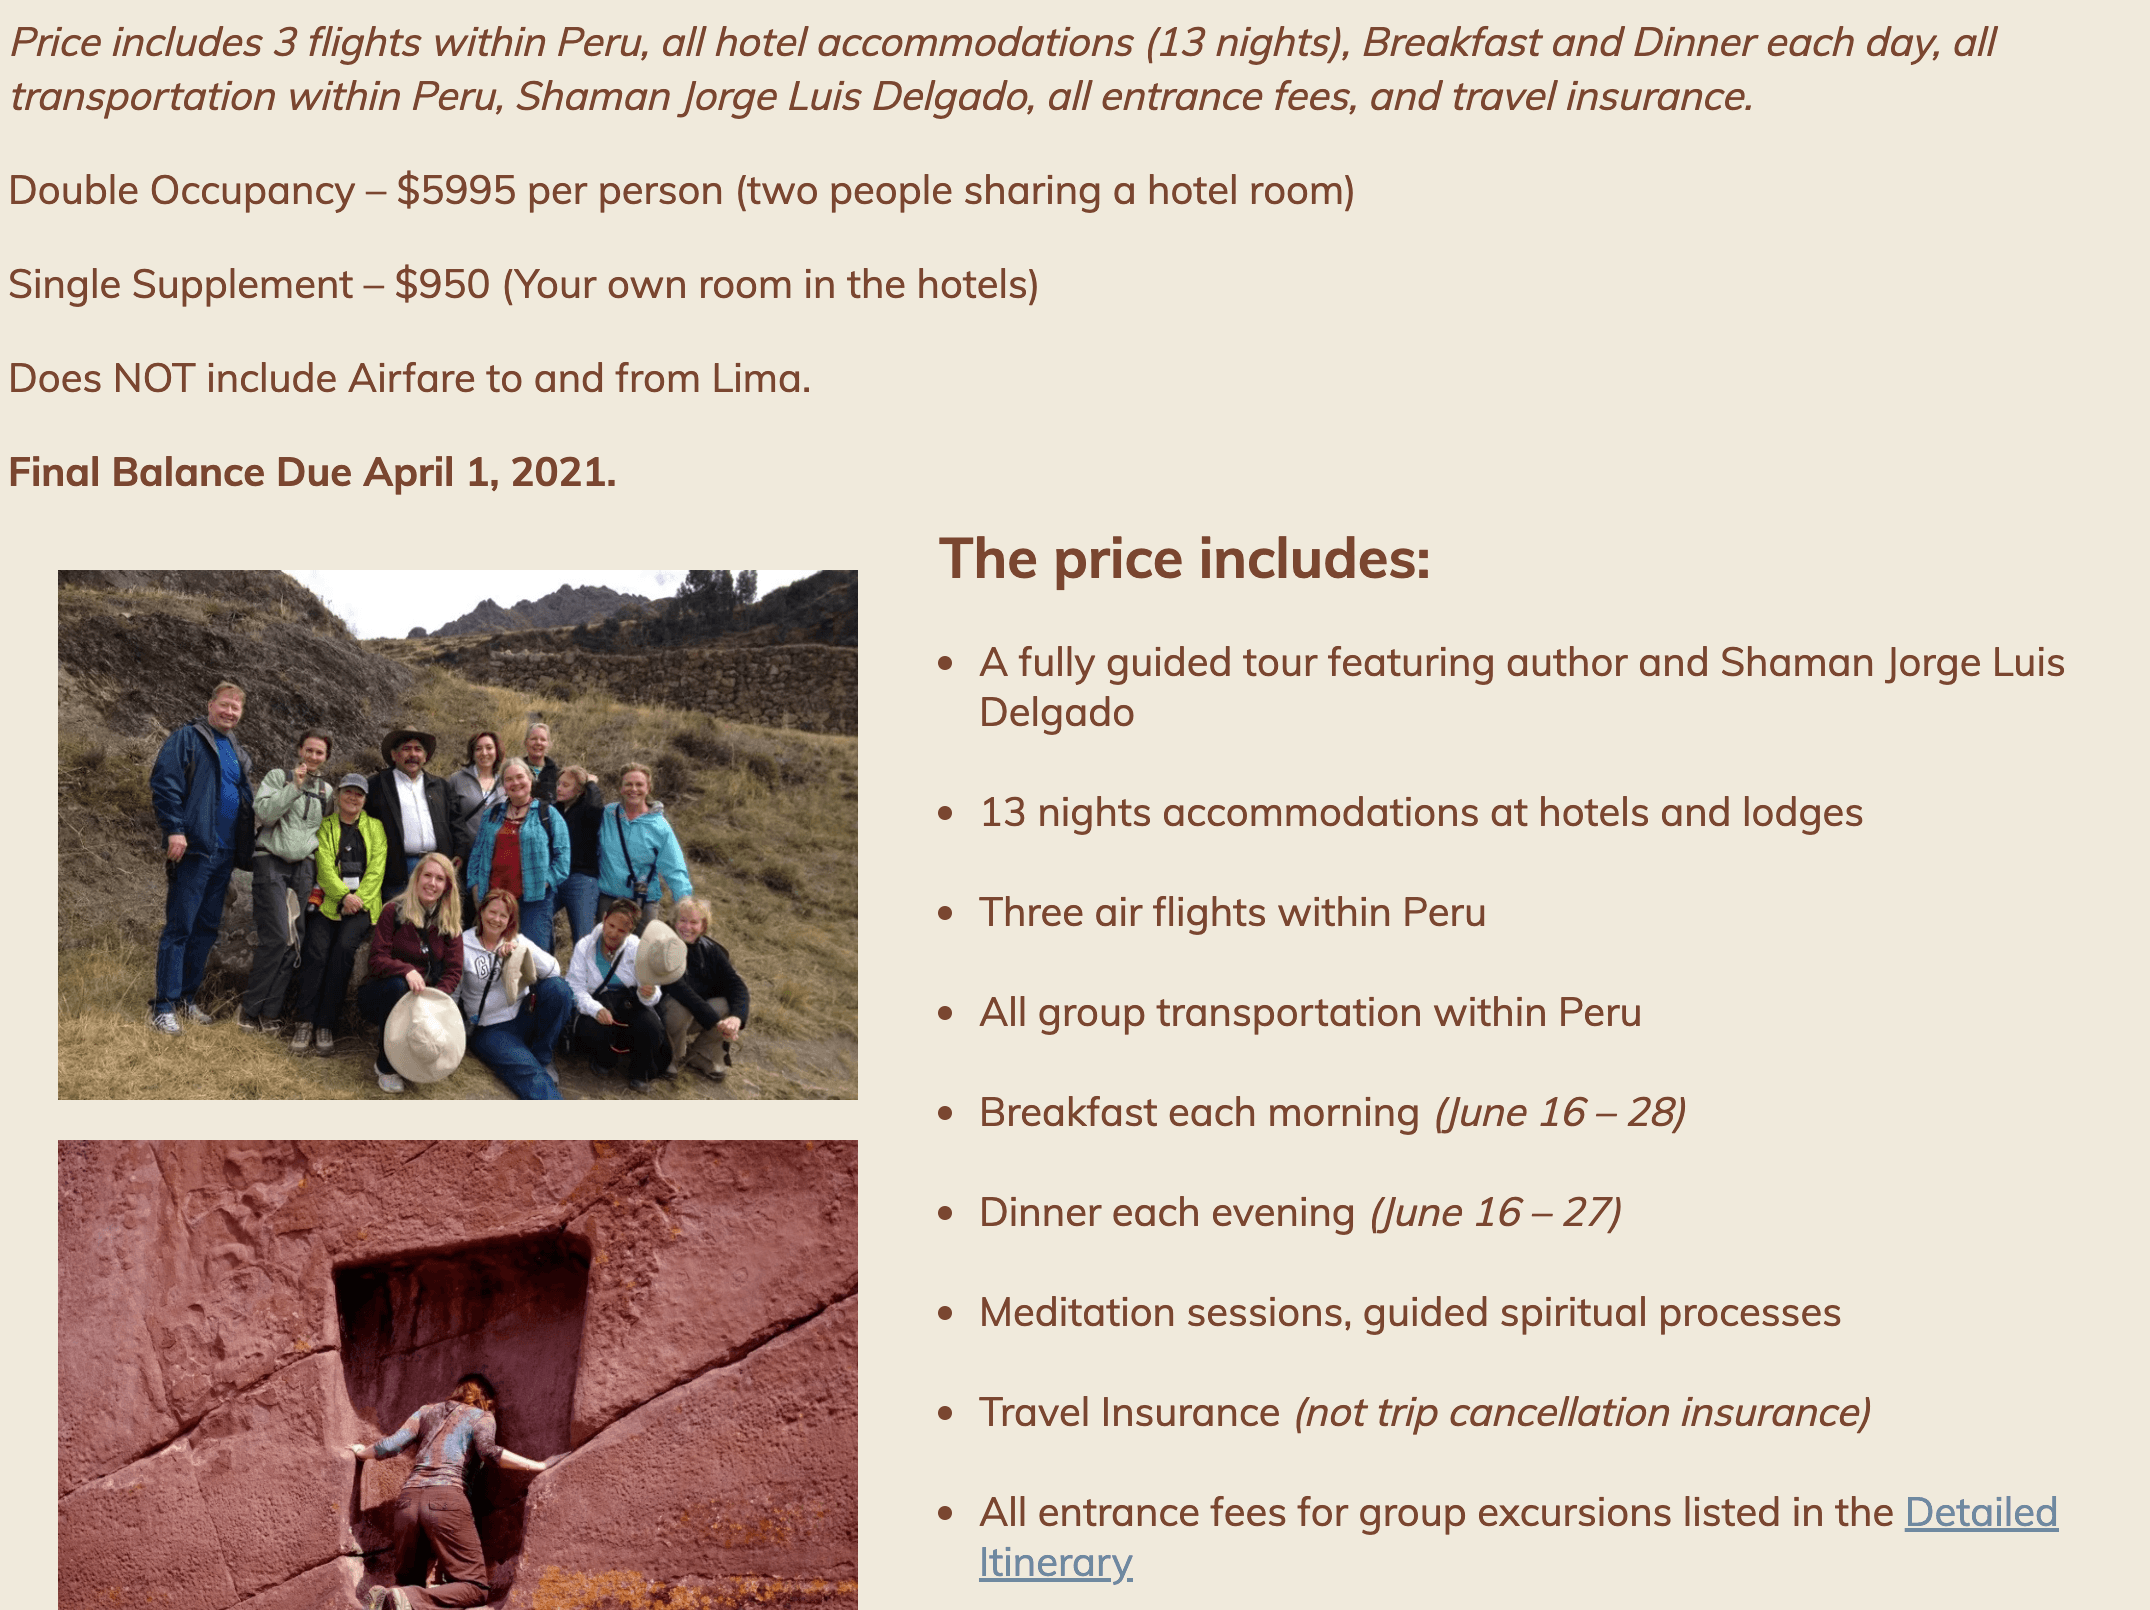 peru 2021 price includes